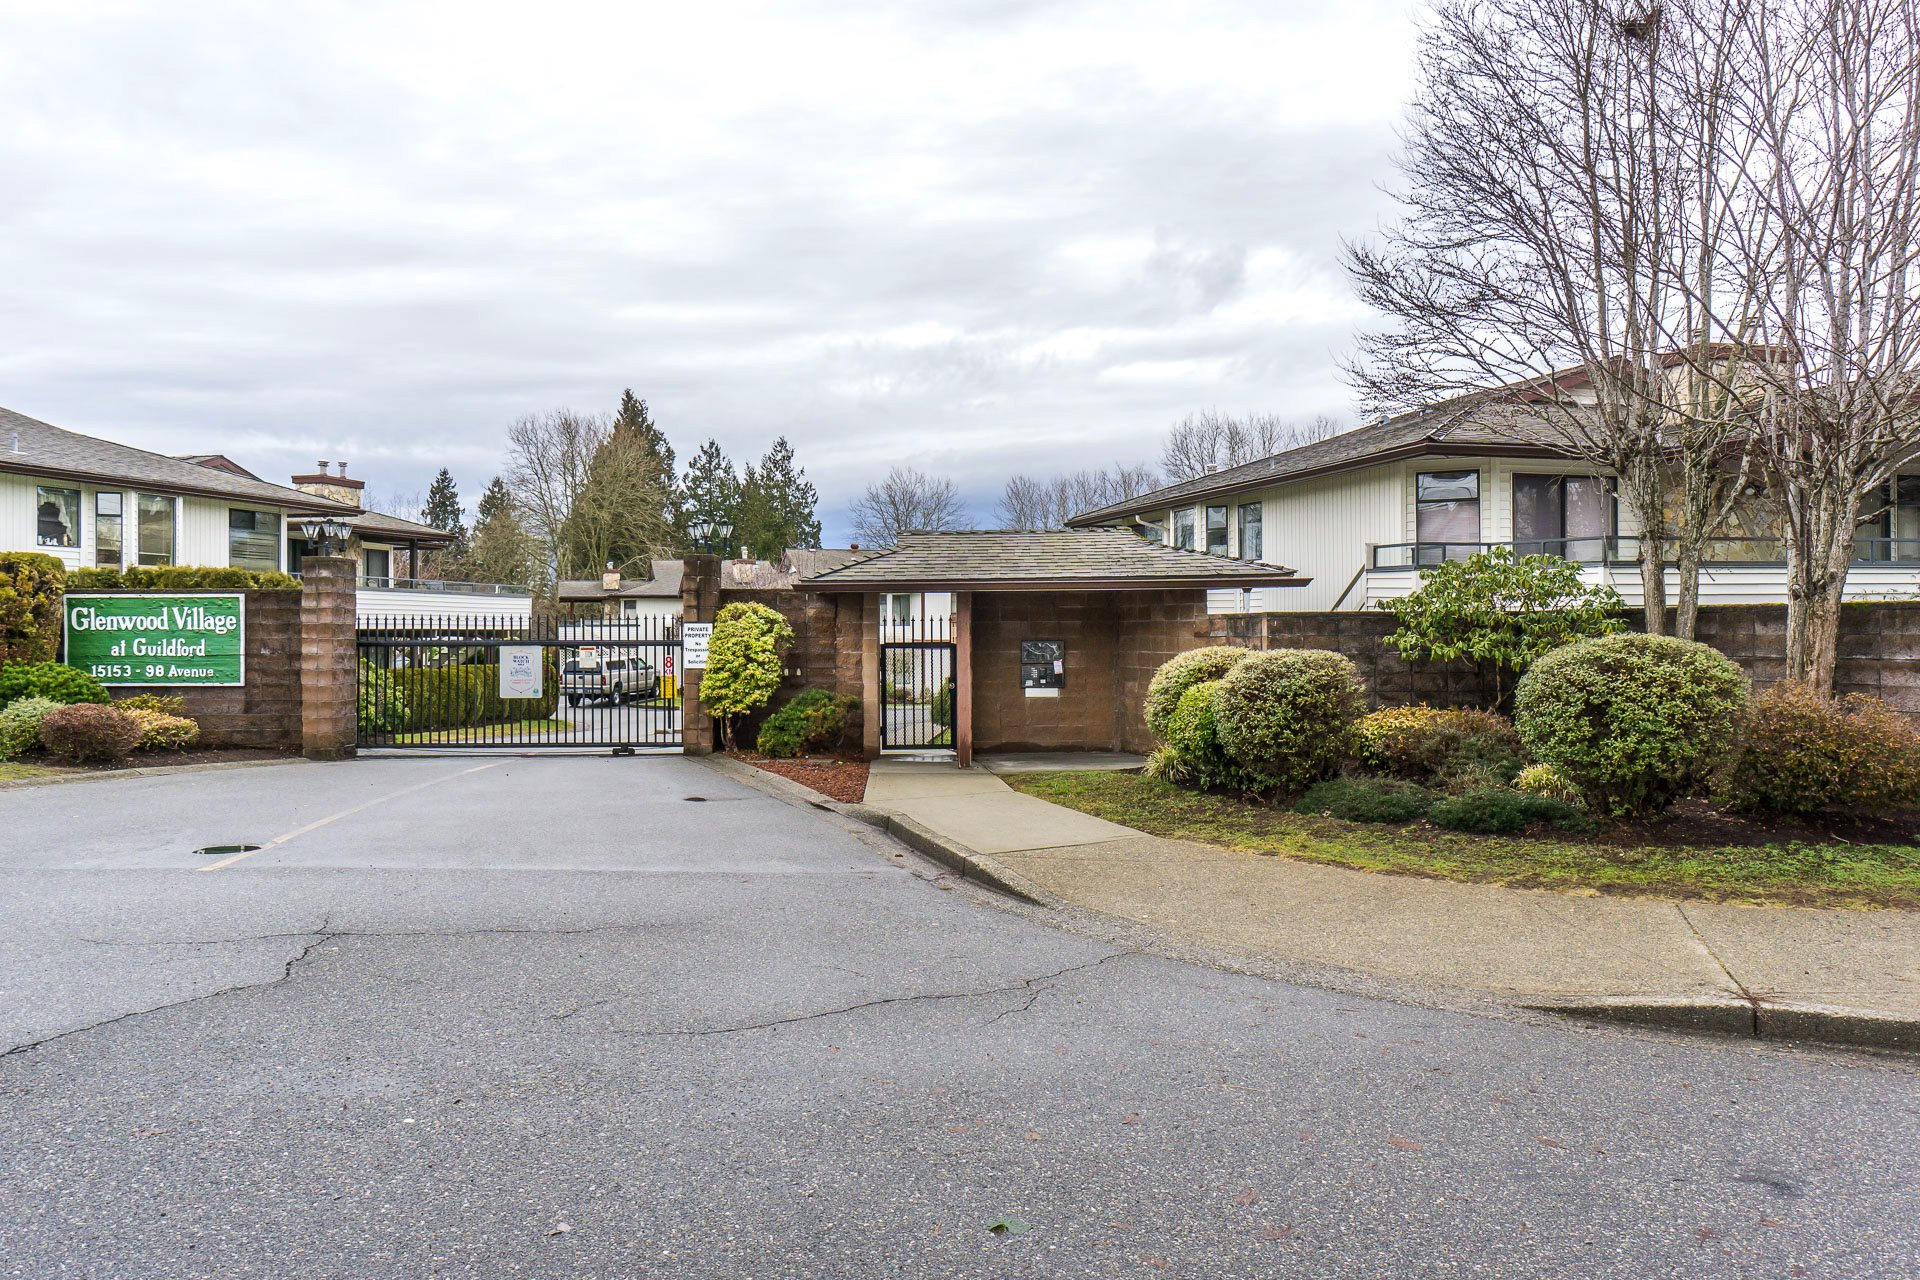 "Main Photo: 219 15153 98 Avenue in Surrey: Guildford Townhouse for sale in ""Glenwood Village"" (North Surrey)  : MLS®# R2233101"